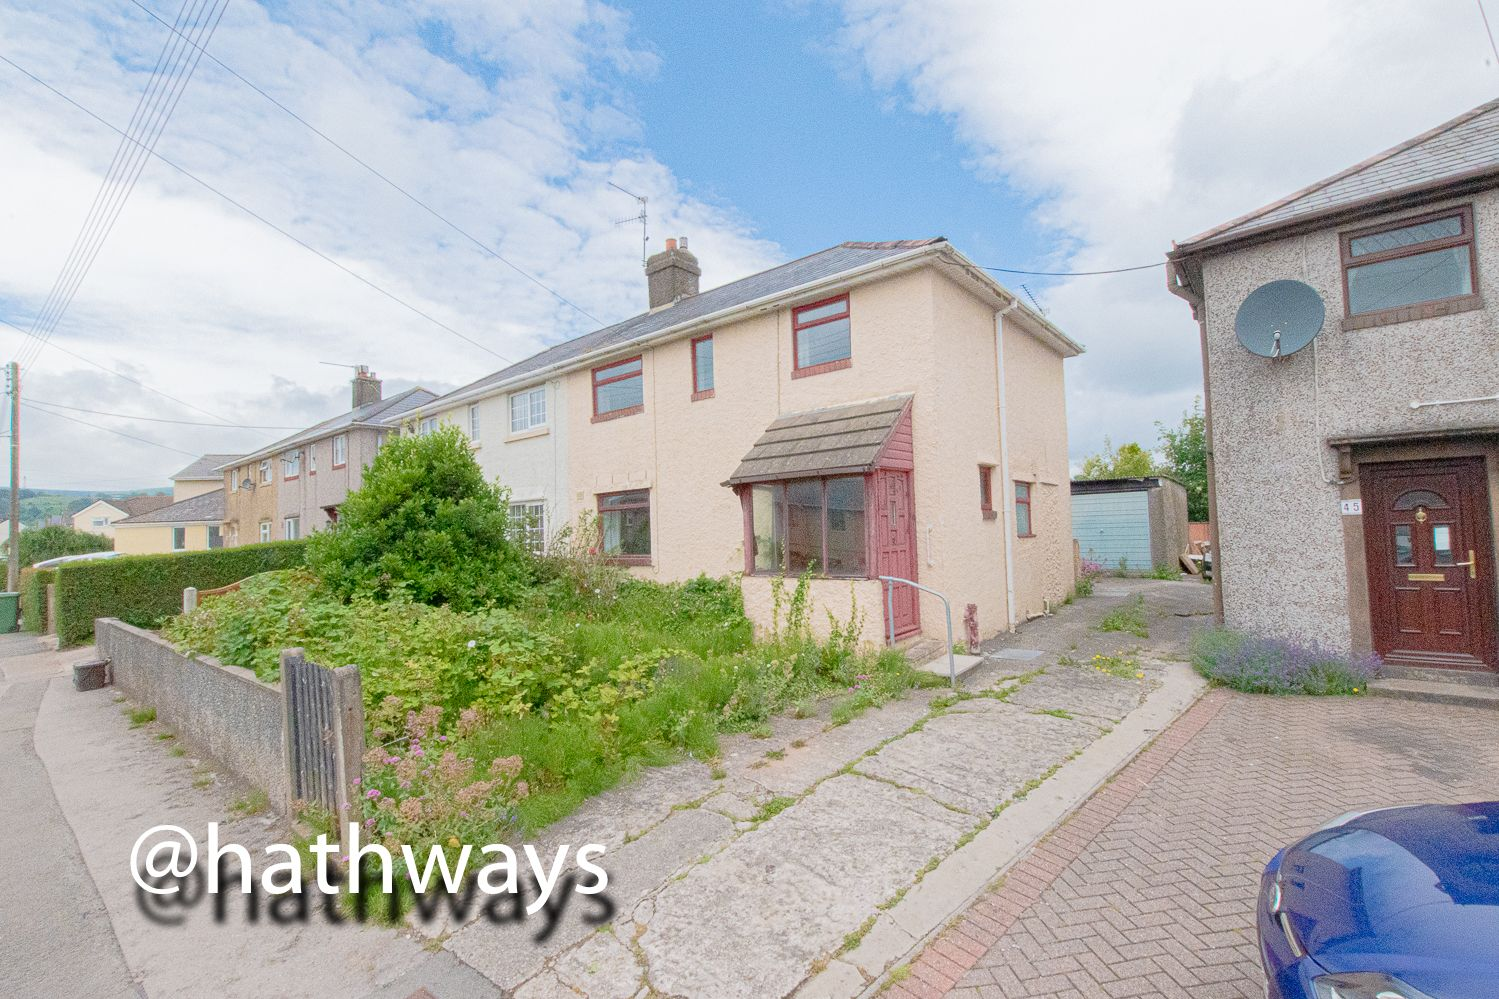 3 bed house for sale in Golf Road, NP4